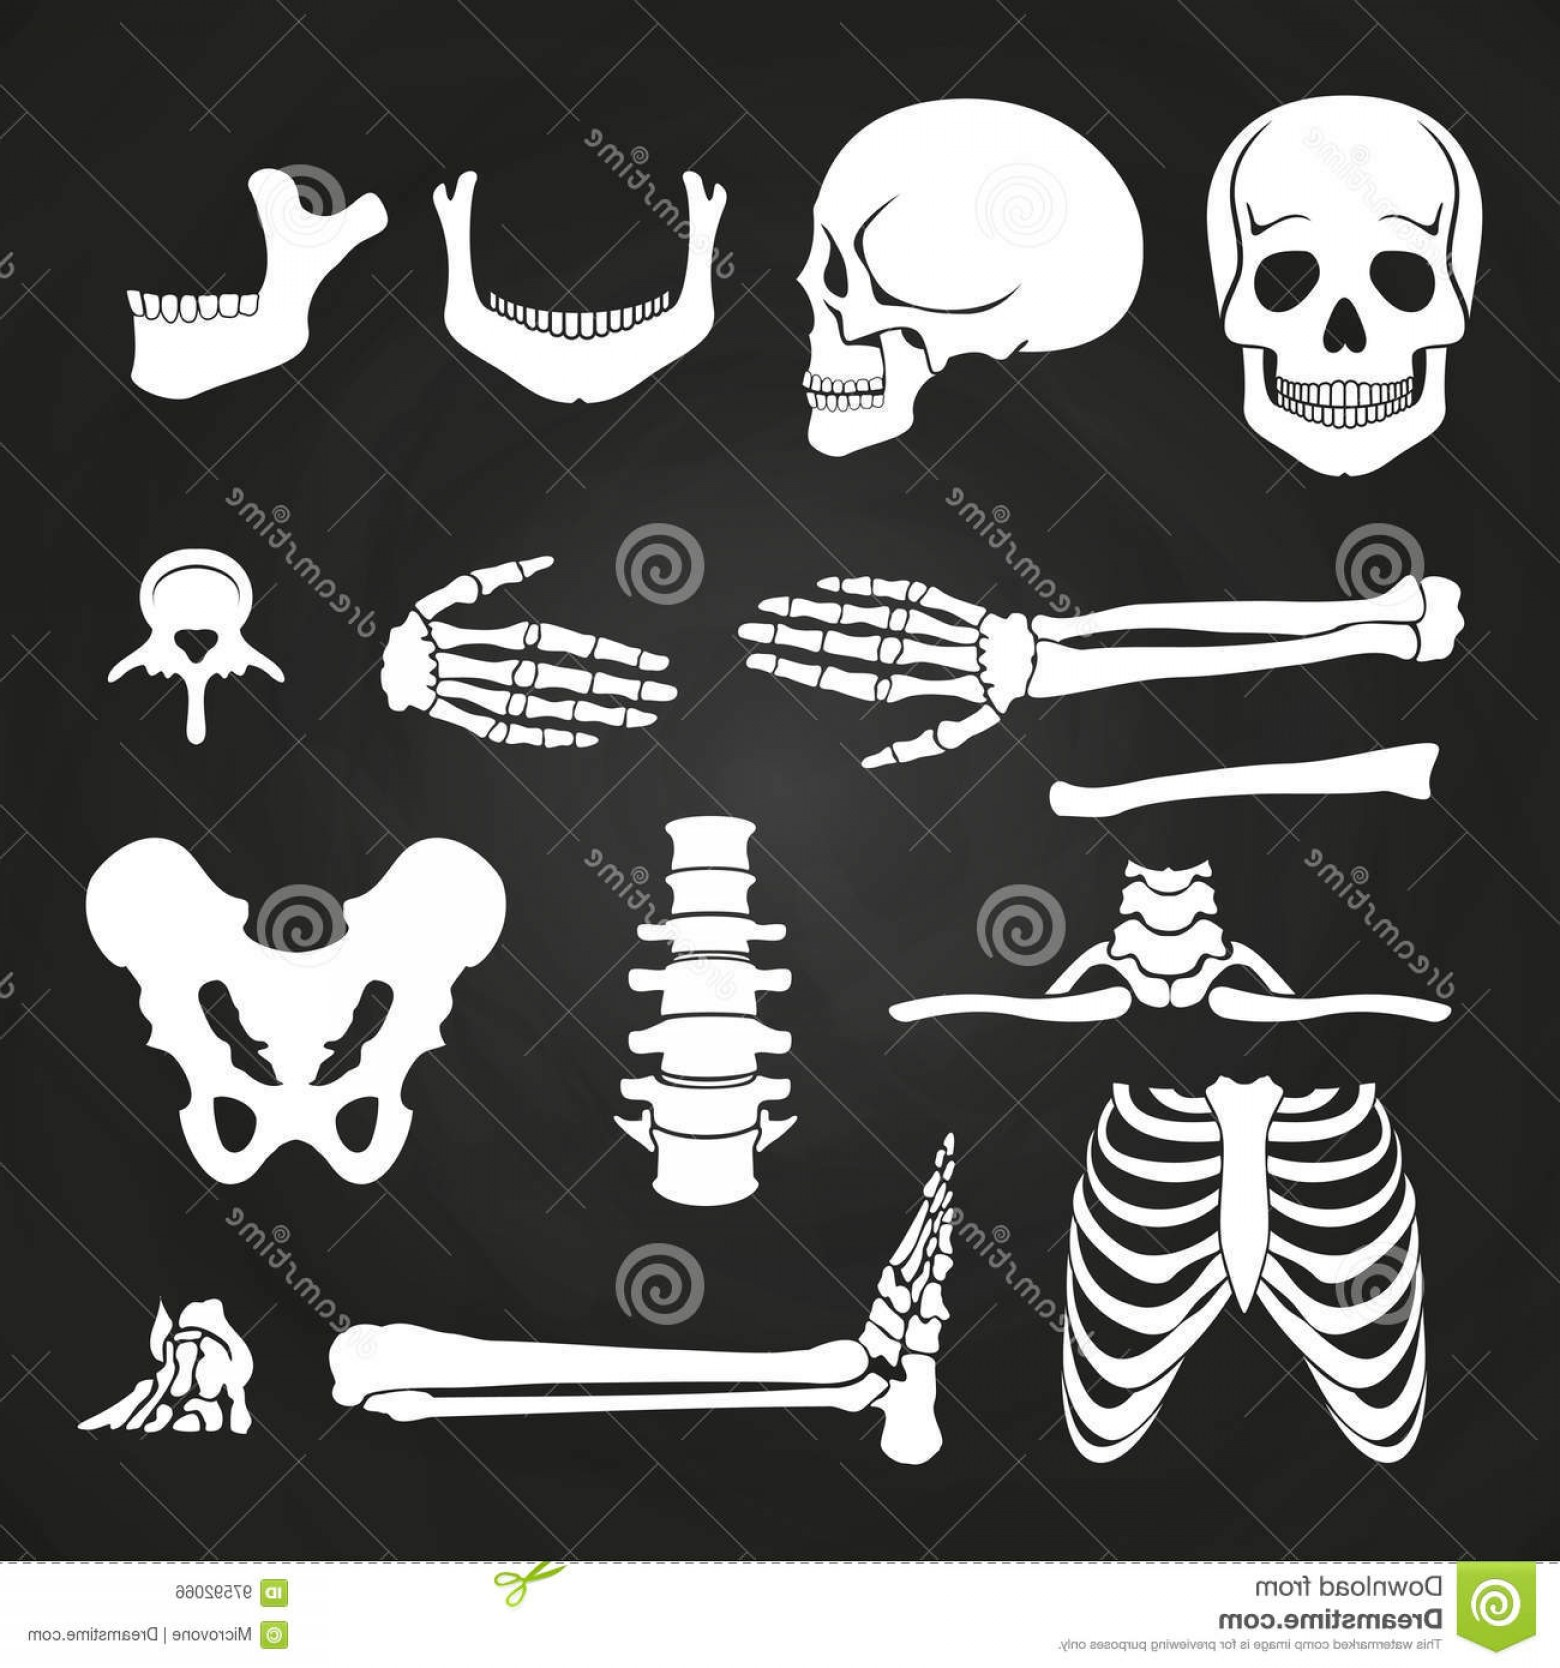 Line Art Human Body Skeleton Labeled Bones Of The Vector: Stock Illustration Human Bones Collection Chalkboard Skeleton Anatomy Backbone Hand Bone Vector Illustration Image